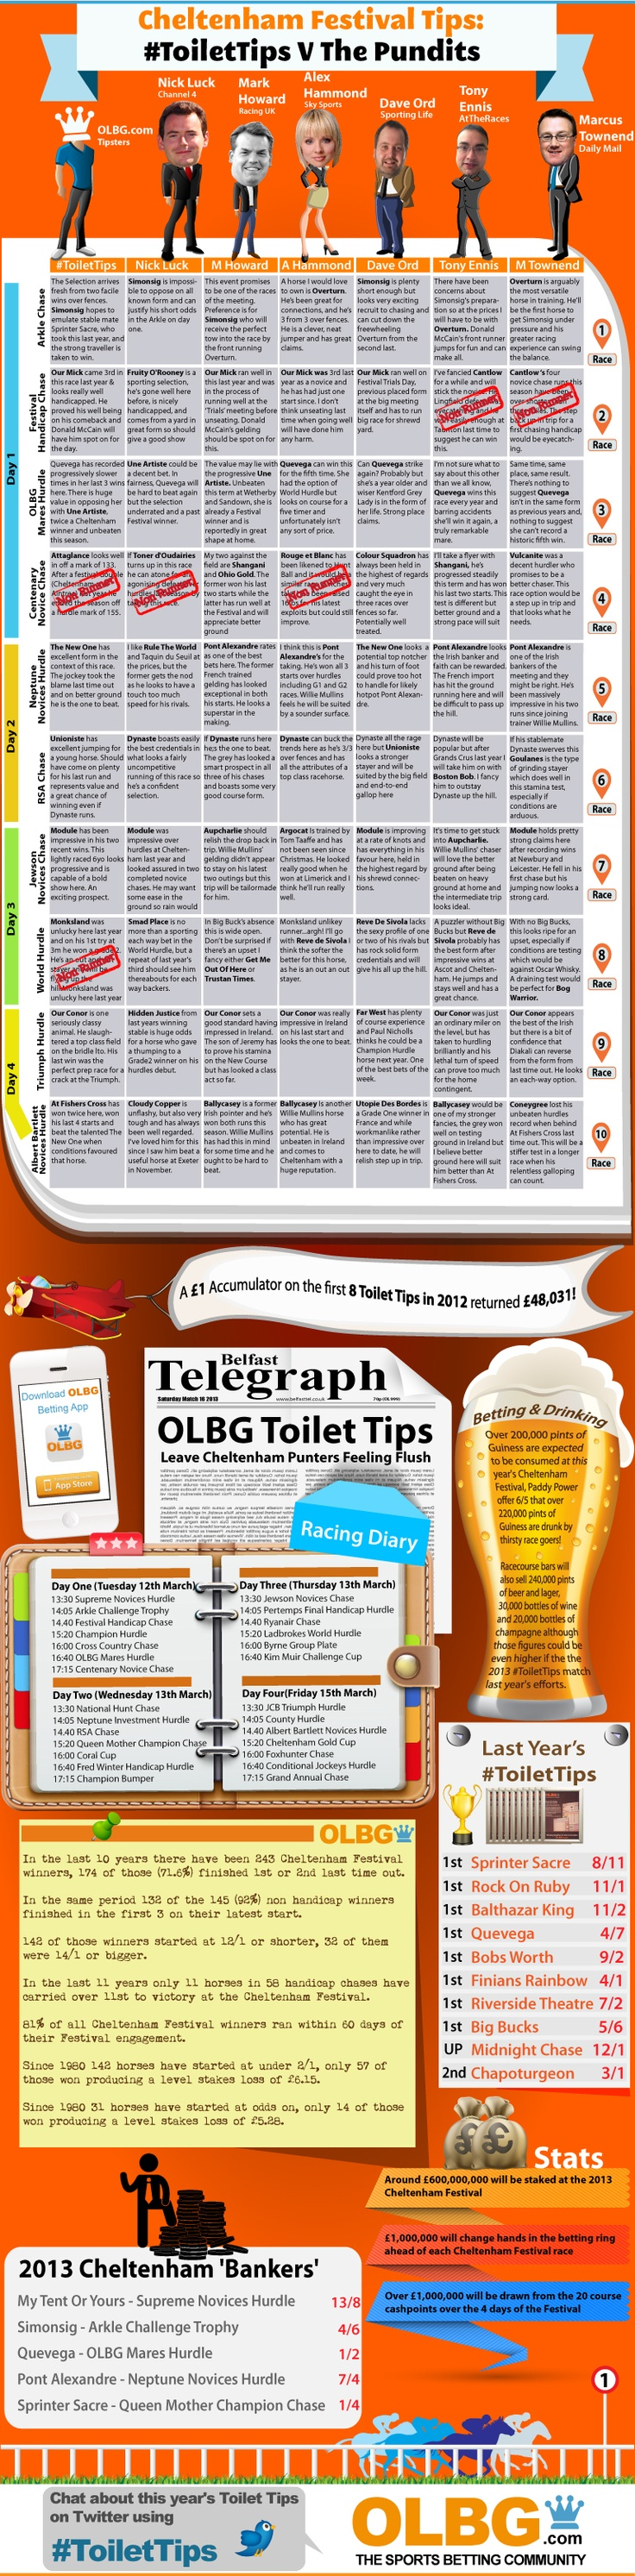 At the 2012 Cheltenham Festival the sponsors of the OLBG Mares' Hurdle, OLBG.com, added 10 Cheltenham Festival Tips from OLBG members to the mens' toilets at Cheltenham racecourse. The first 8 of those 'Toilet Tips' won at combined odds of 48,030/1. The Toilet Tips are back for the Cheltenham Festival 2013 and this time they are going head to head with some well known racing personalities to see who comes out on top.